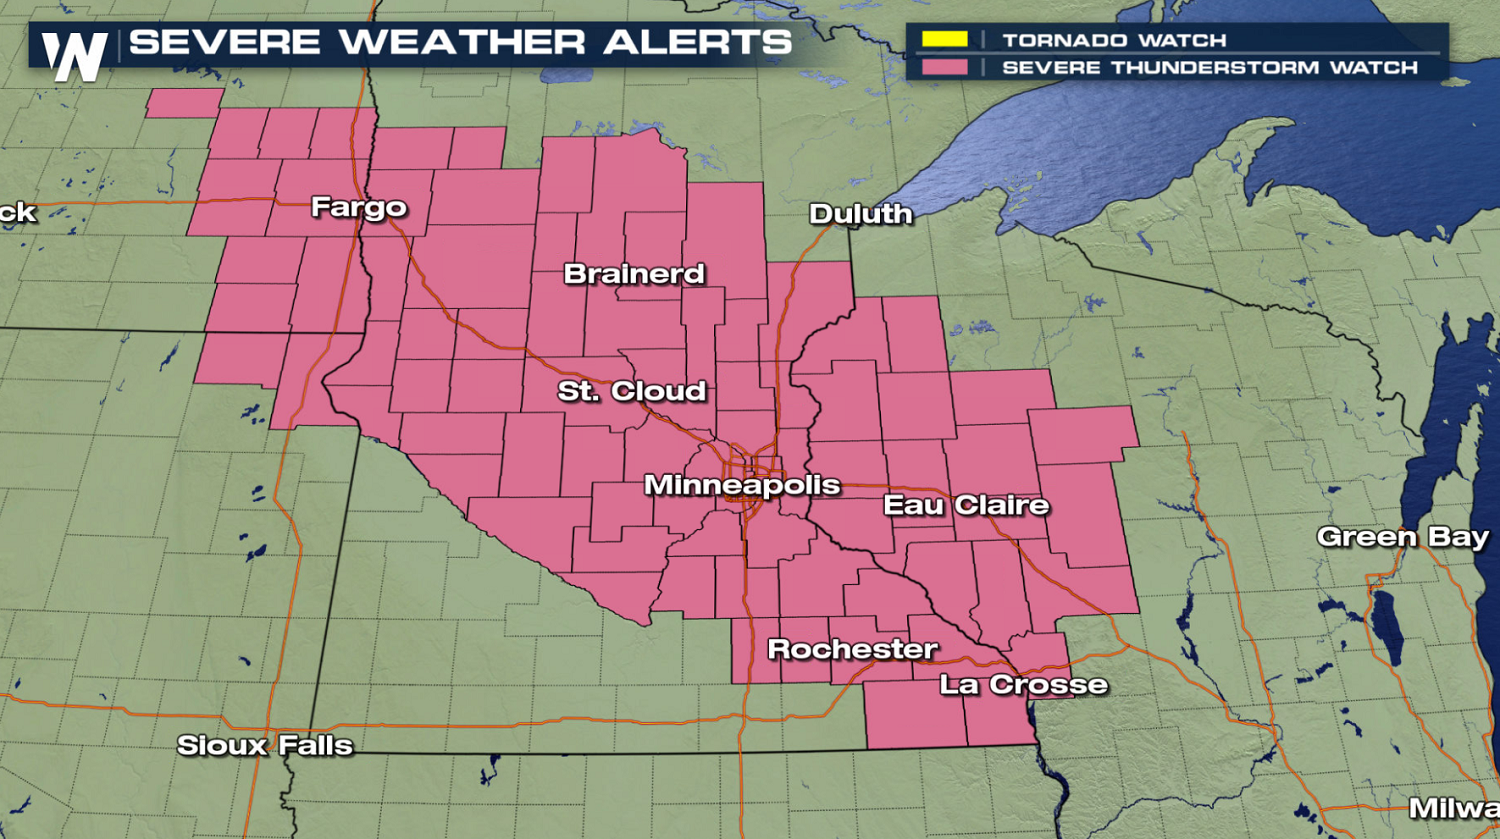 Damaging Wind Gusts Possible with Upper Midwest Severe Storm Tonight